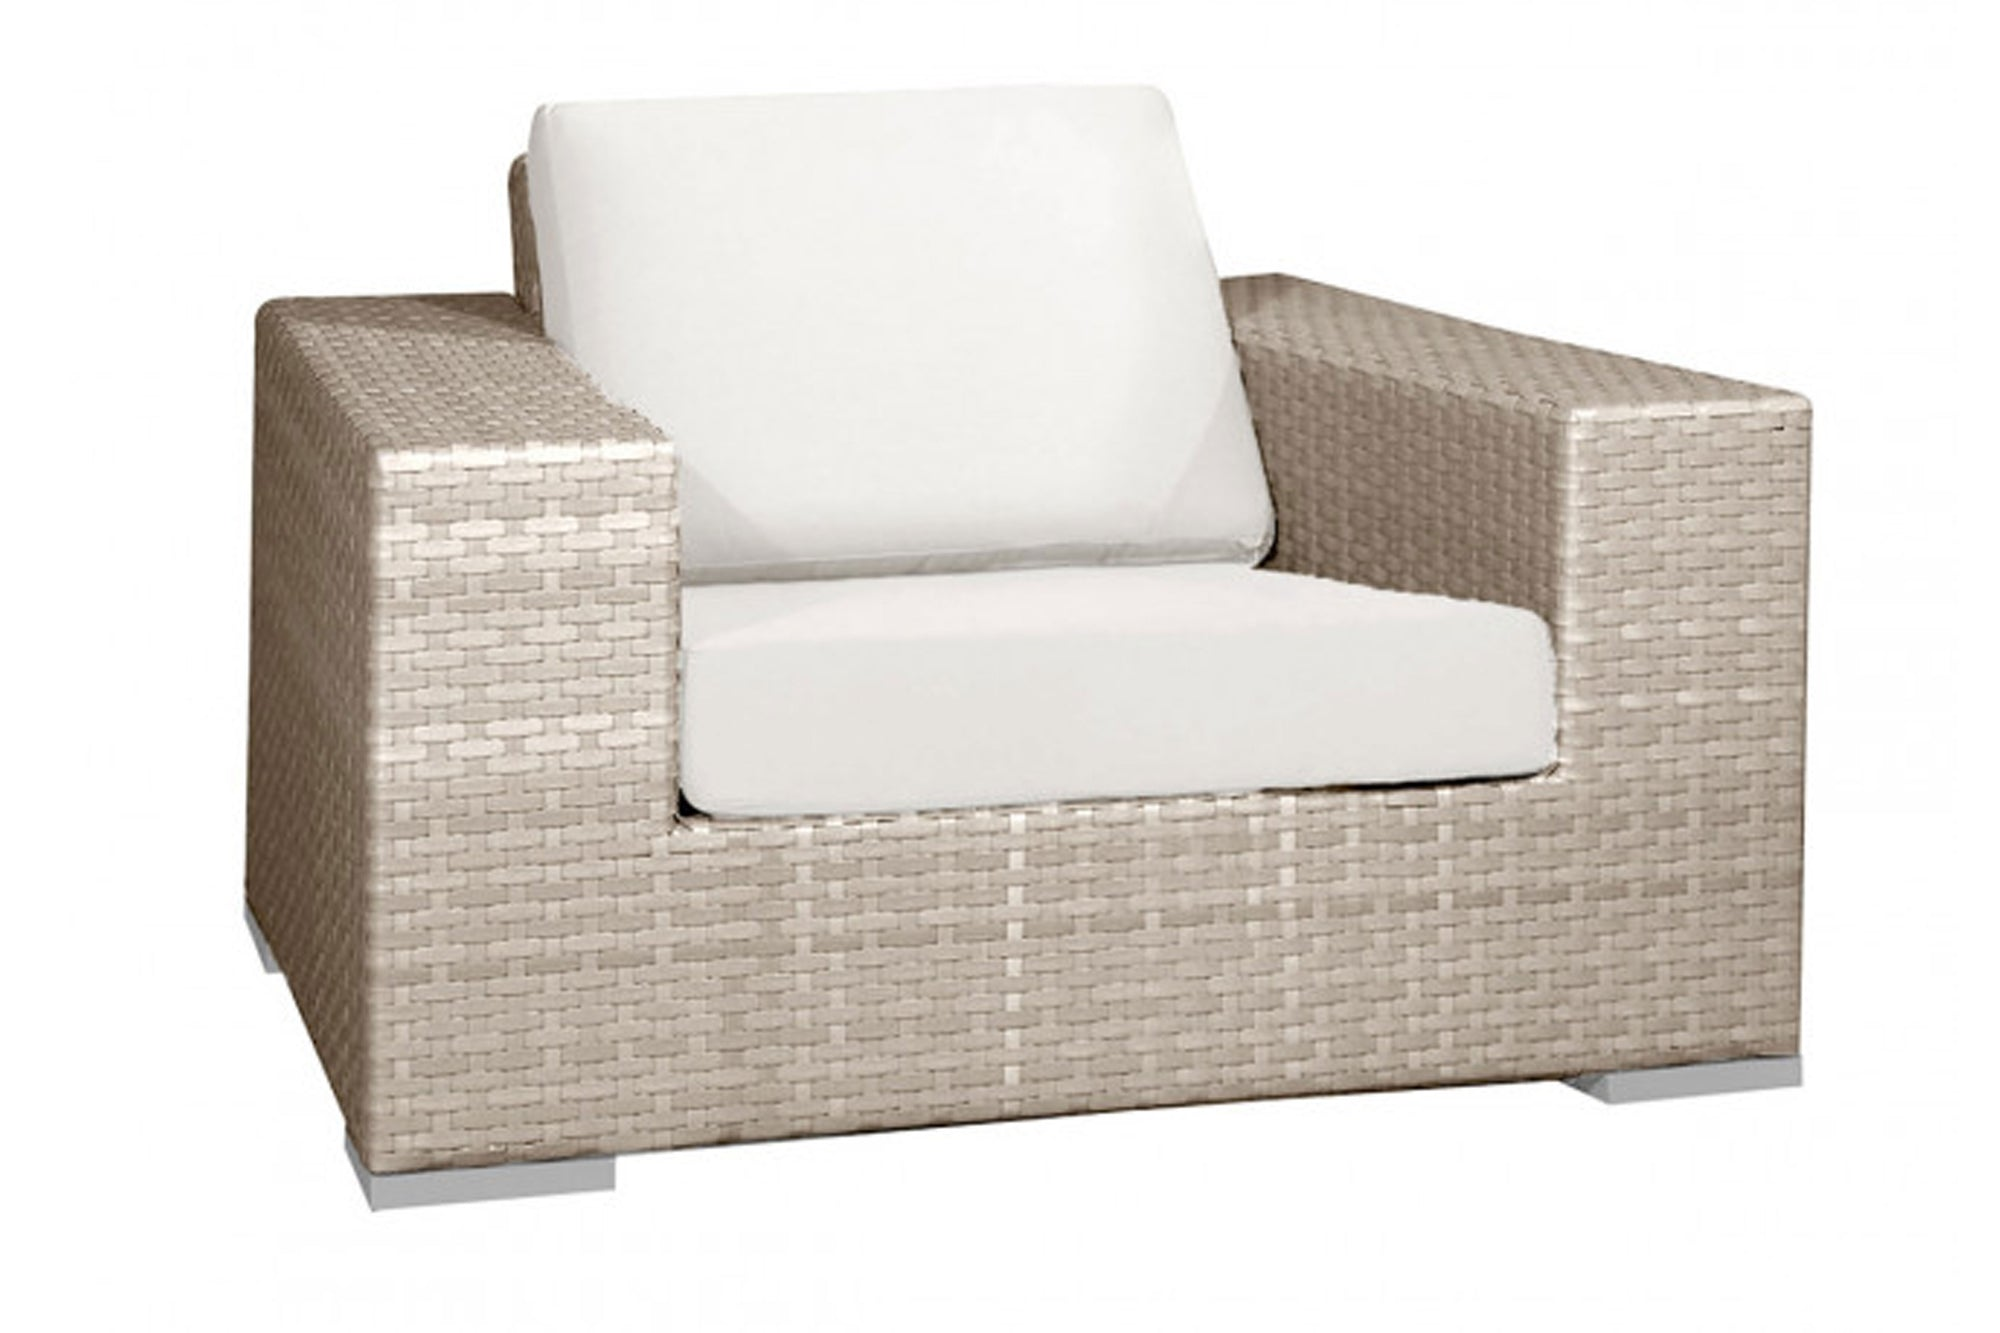 Cubix Lounge Chair w/off-white cushion